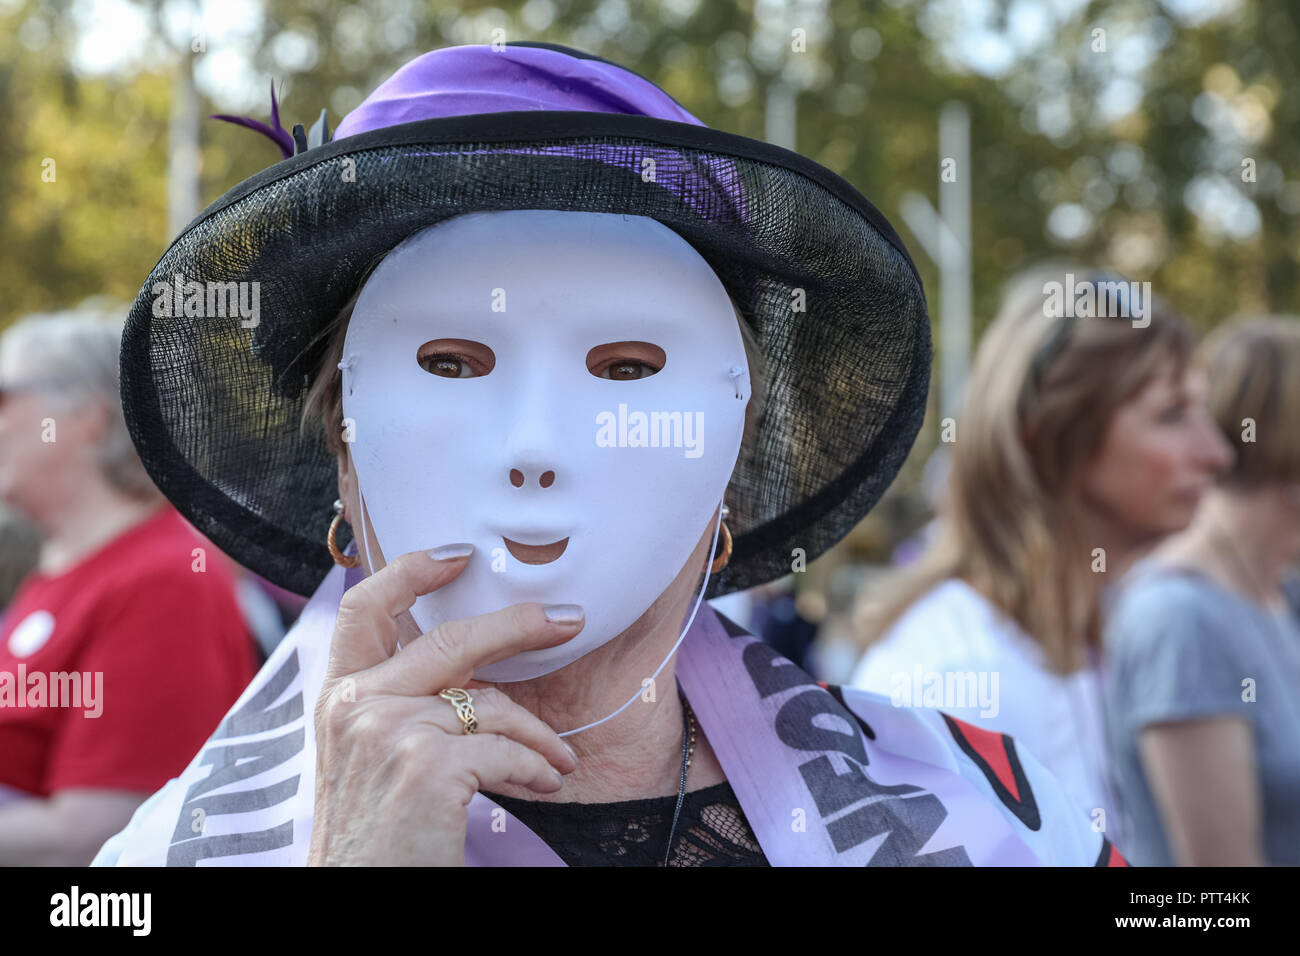 Westminster, London, 10th Oct 2018. A campaigner in suffragette costume and mask shouts for pension equality. Women's pension groups, including the WASPI Campaign, have organised a march from Hyde Park to Parliament Square where several thousand women demonstrate for pension equality in British state pensions. Credit: Imageplotter News and Sports/Alamy Live News - Stock Image